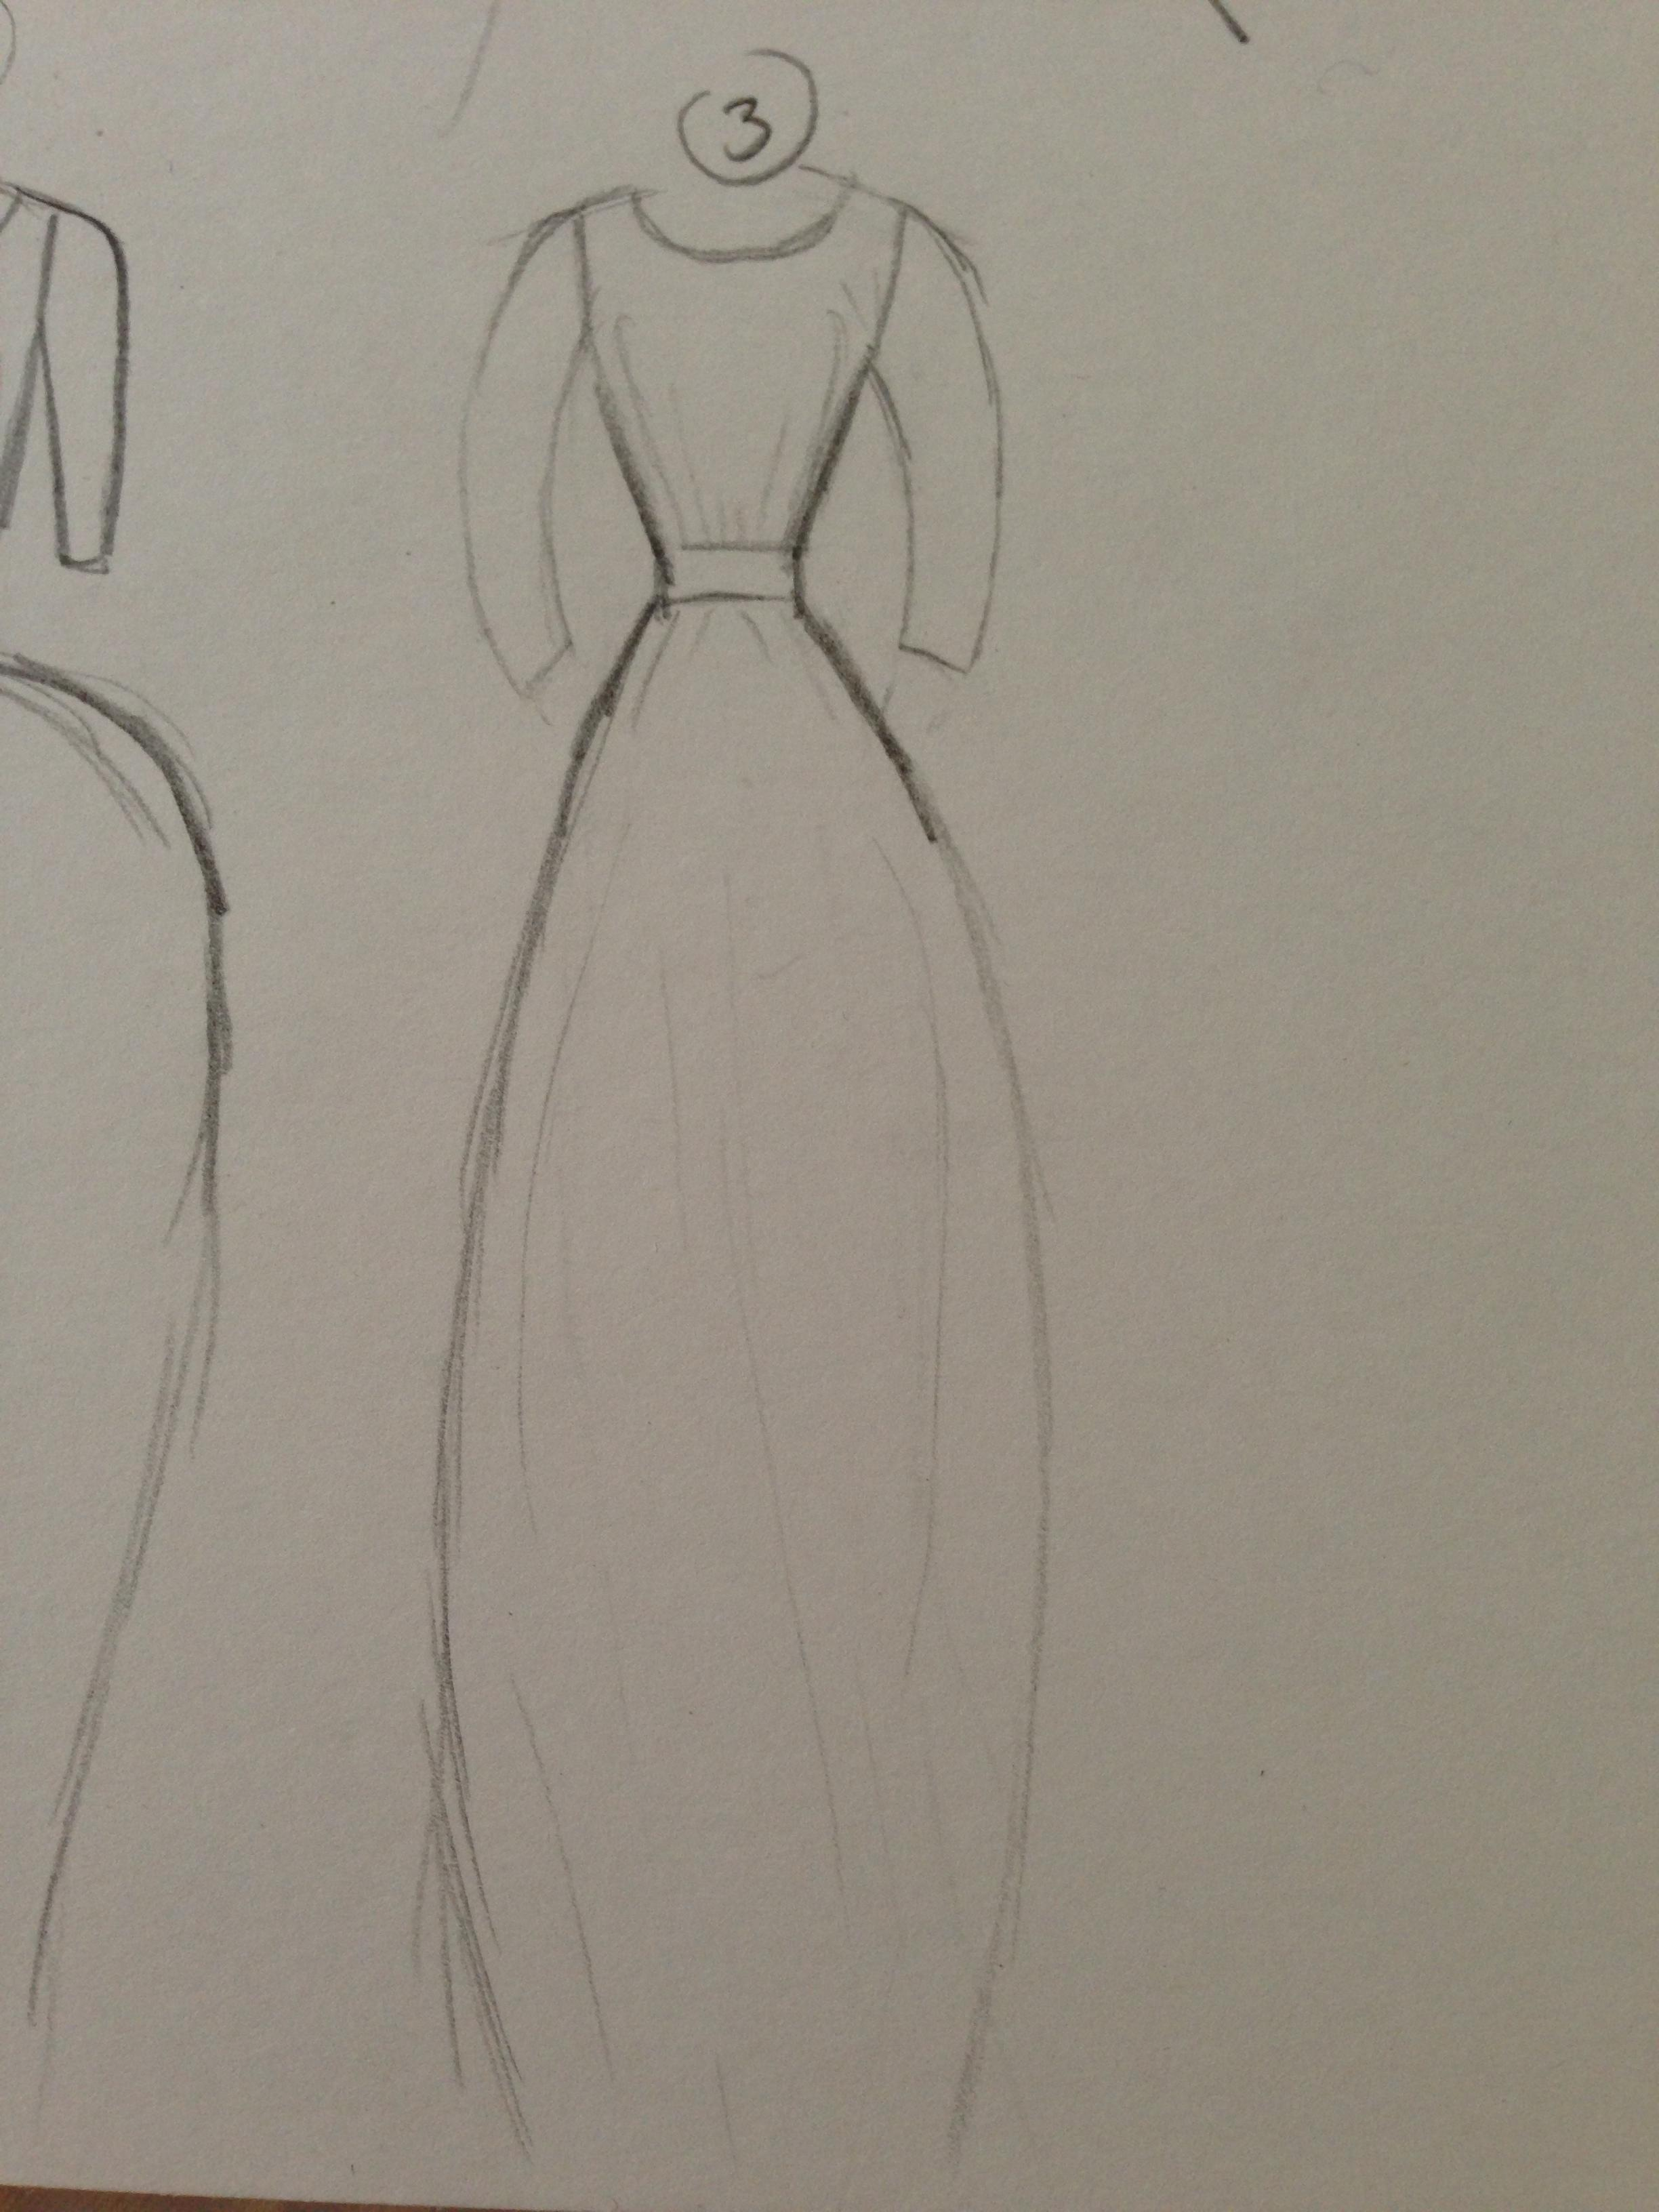 WATERCOLOR -- Dresses that Inspire - image 10 - student project